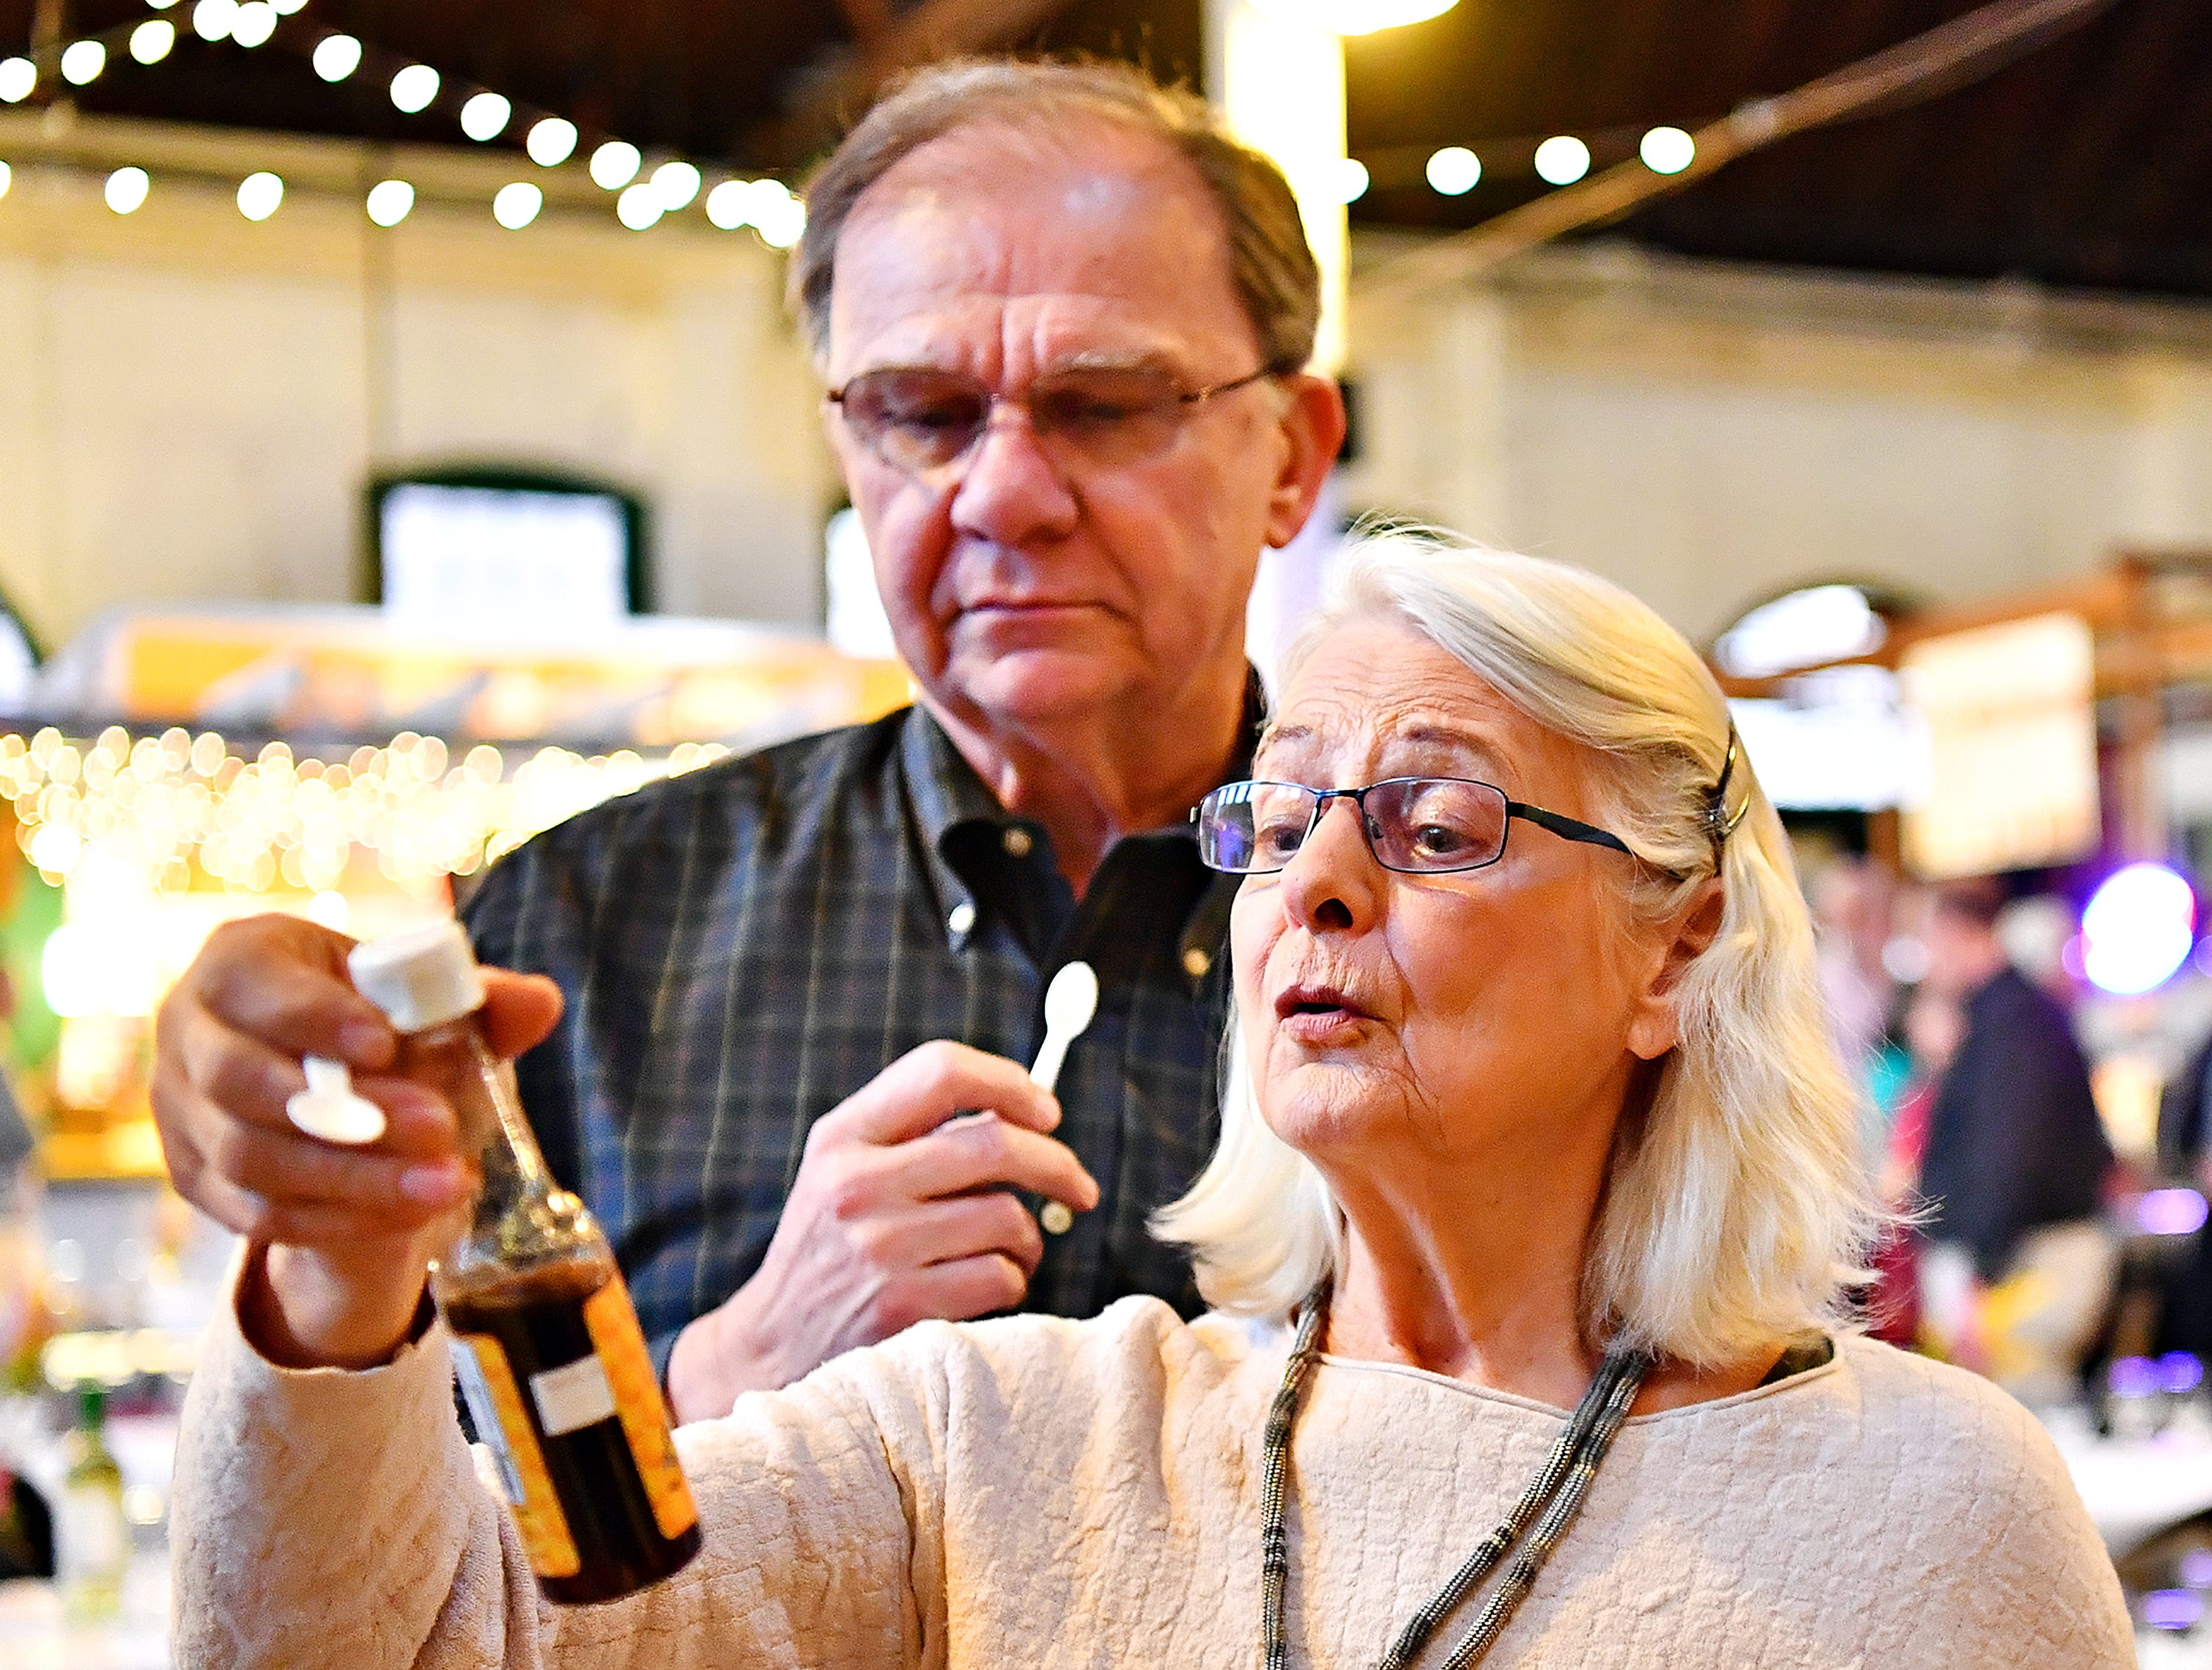 Ron Schultz, left, of Baltimore, looks on as Lauren Andersen, of Stewartstown, examines one of the honey products being tasted during the York County Beekeepers' Association Centennial Banquet at Central Market in York City, Friday, March 8, 2019. Andersen has been keeping bees for about six years and has eight colonies. Dawn J. Sagert photo